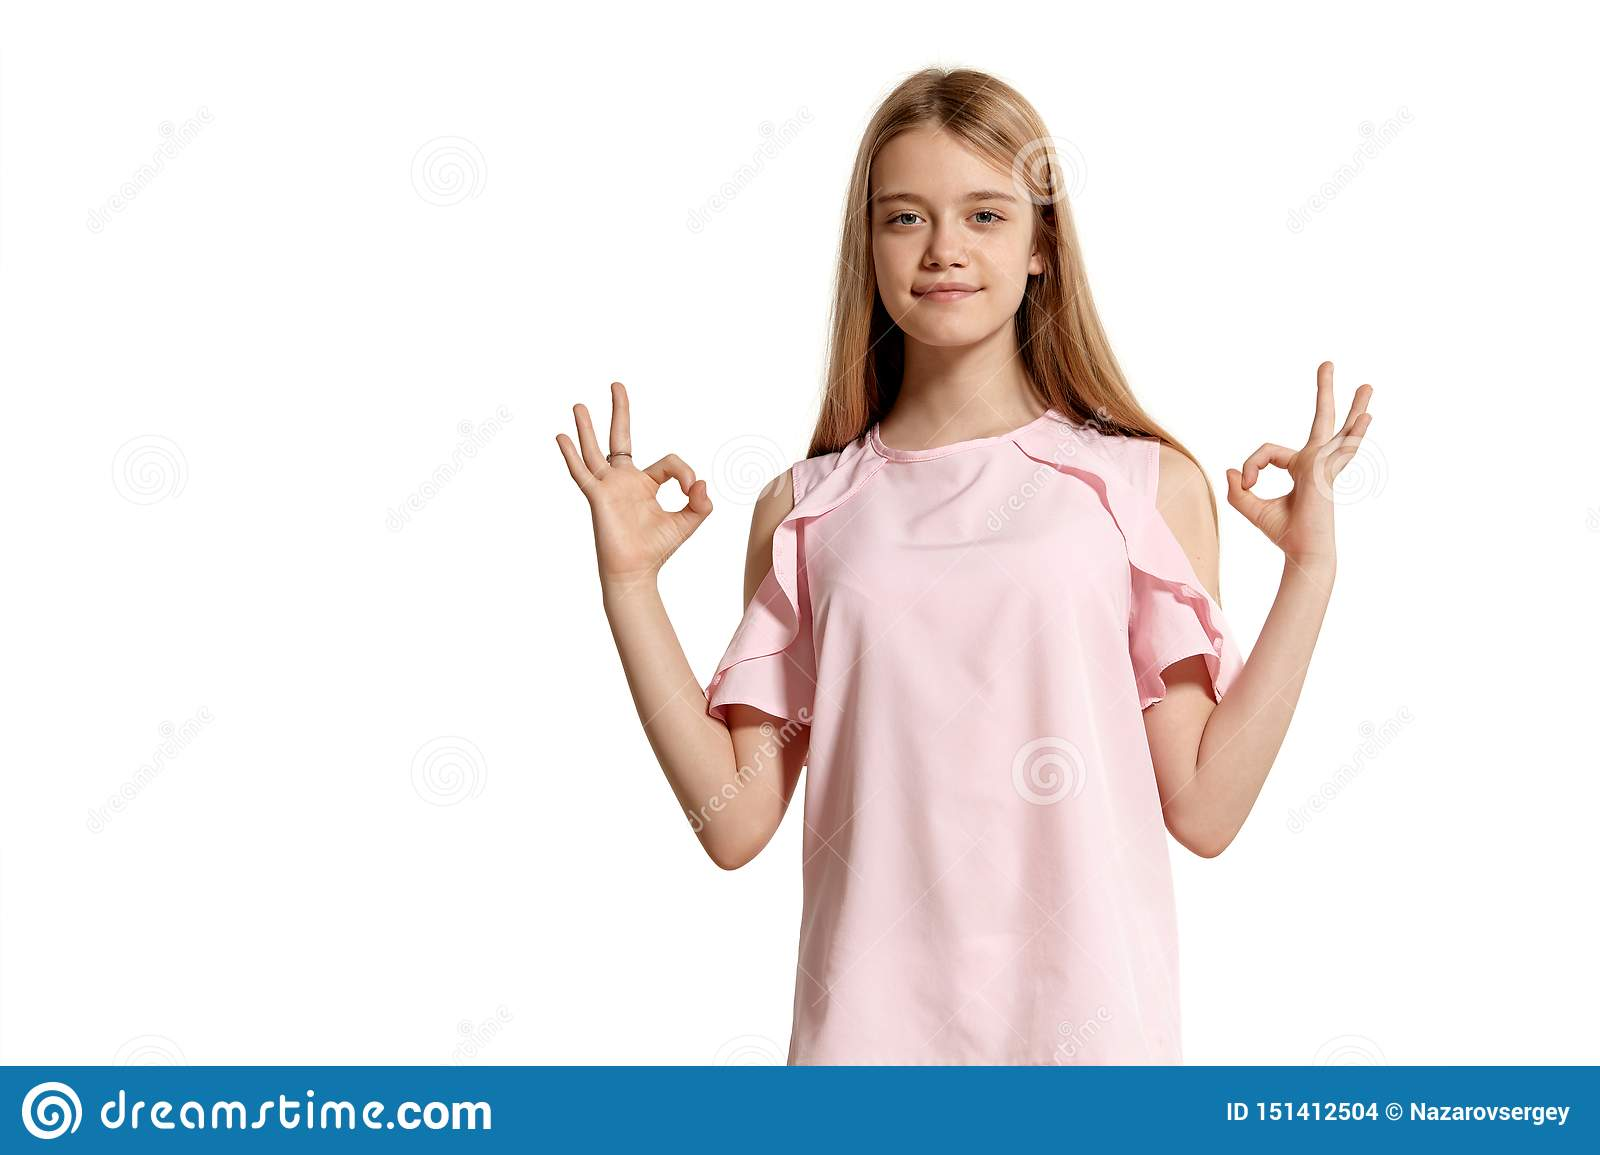 Studio portrait of a beautiful girl blonde teenager in a pink t-shirt posing isolated on white background.